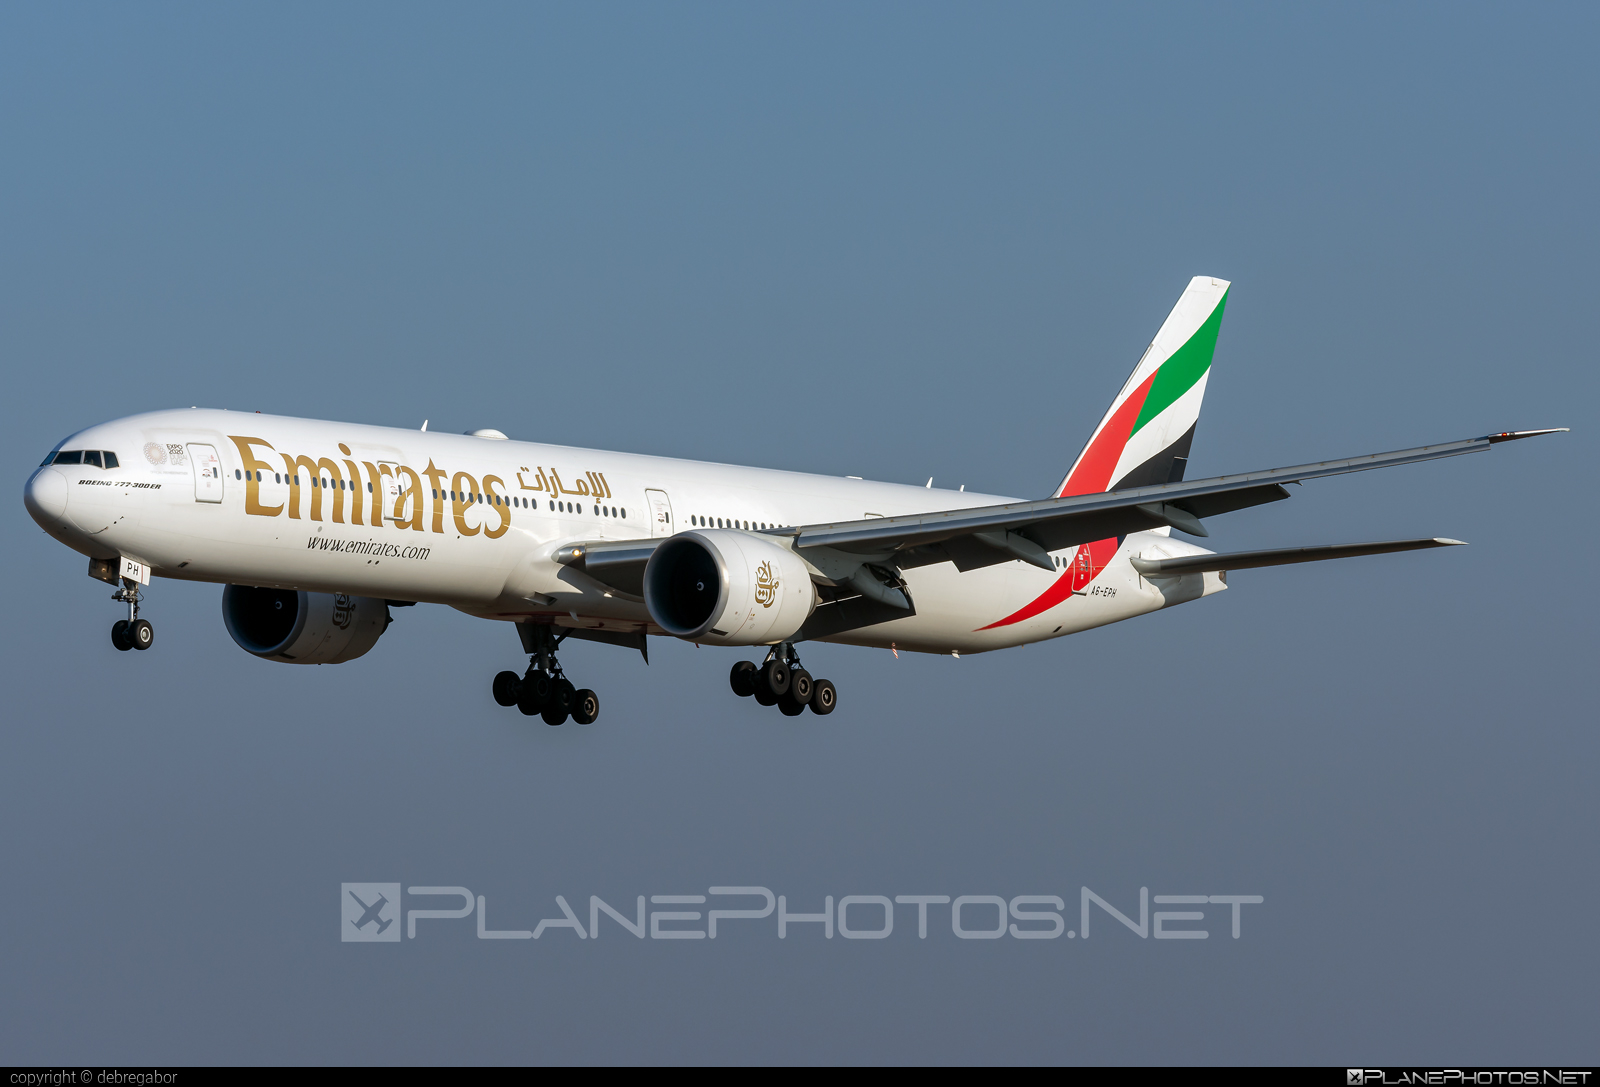 Boeing 777-300ER - A6-EPH operated by Emirates #b777 #b777er #boeing #boeing777 #emirates #tripleseven